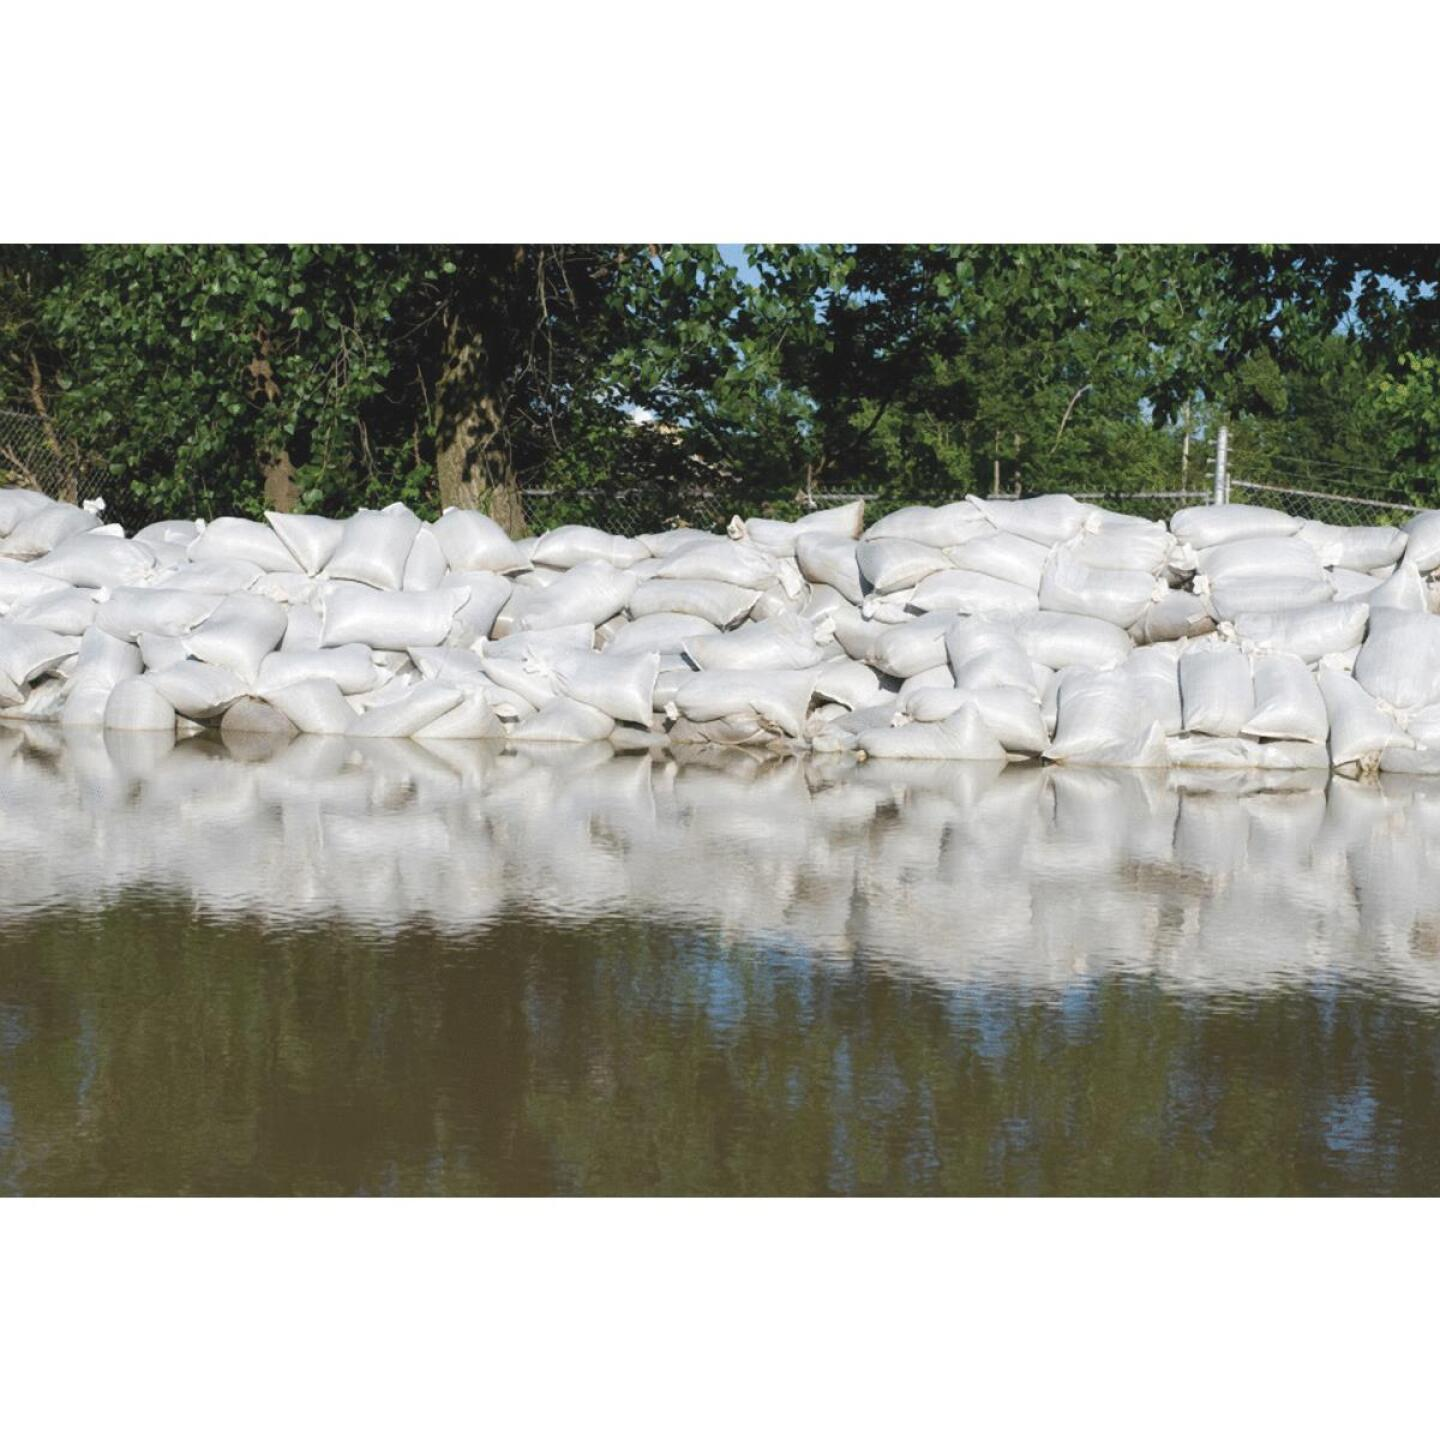 14 In. x 26 In. Empty Sandbags (100-Pack) Image 1